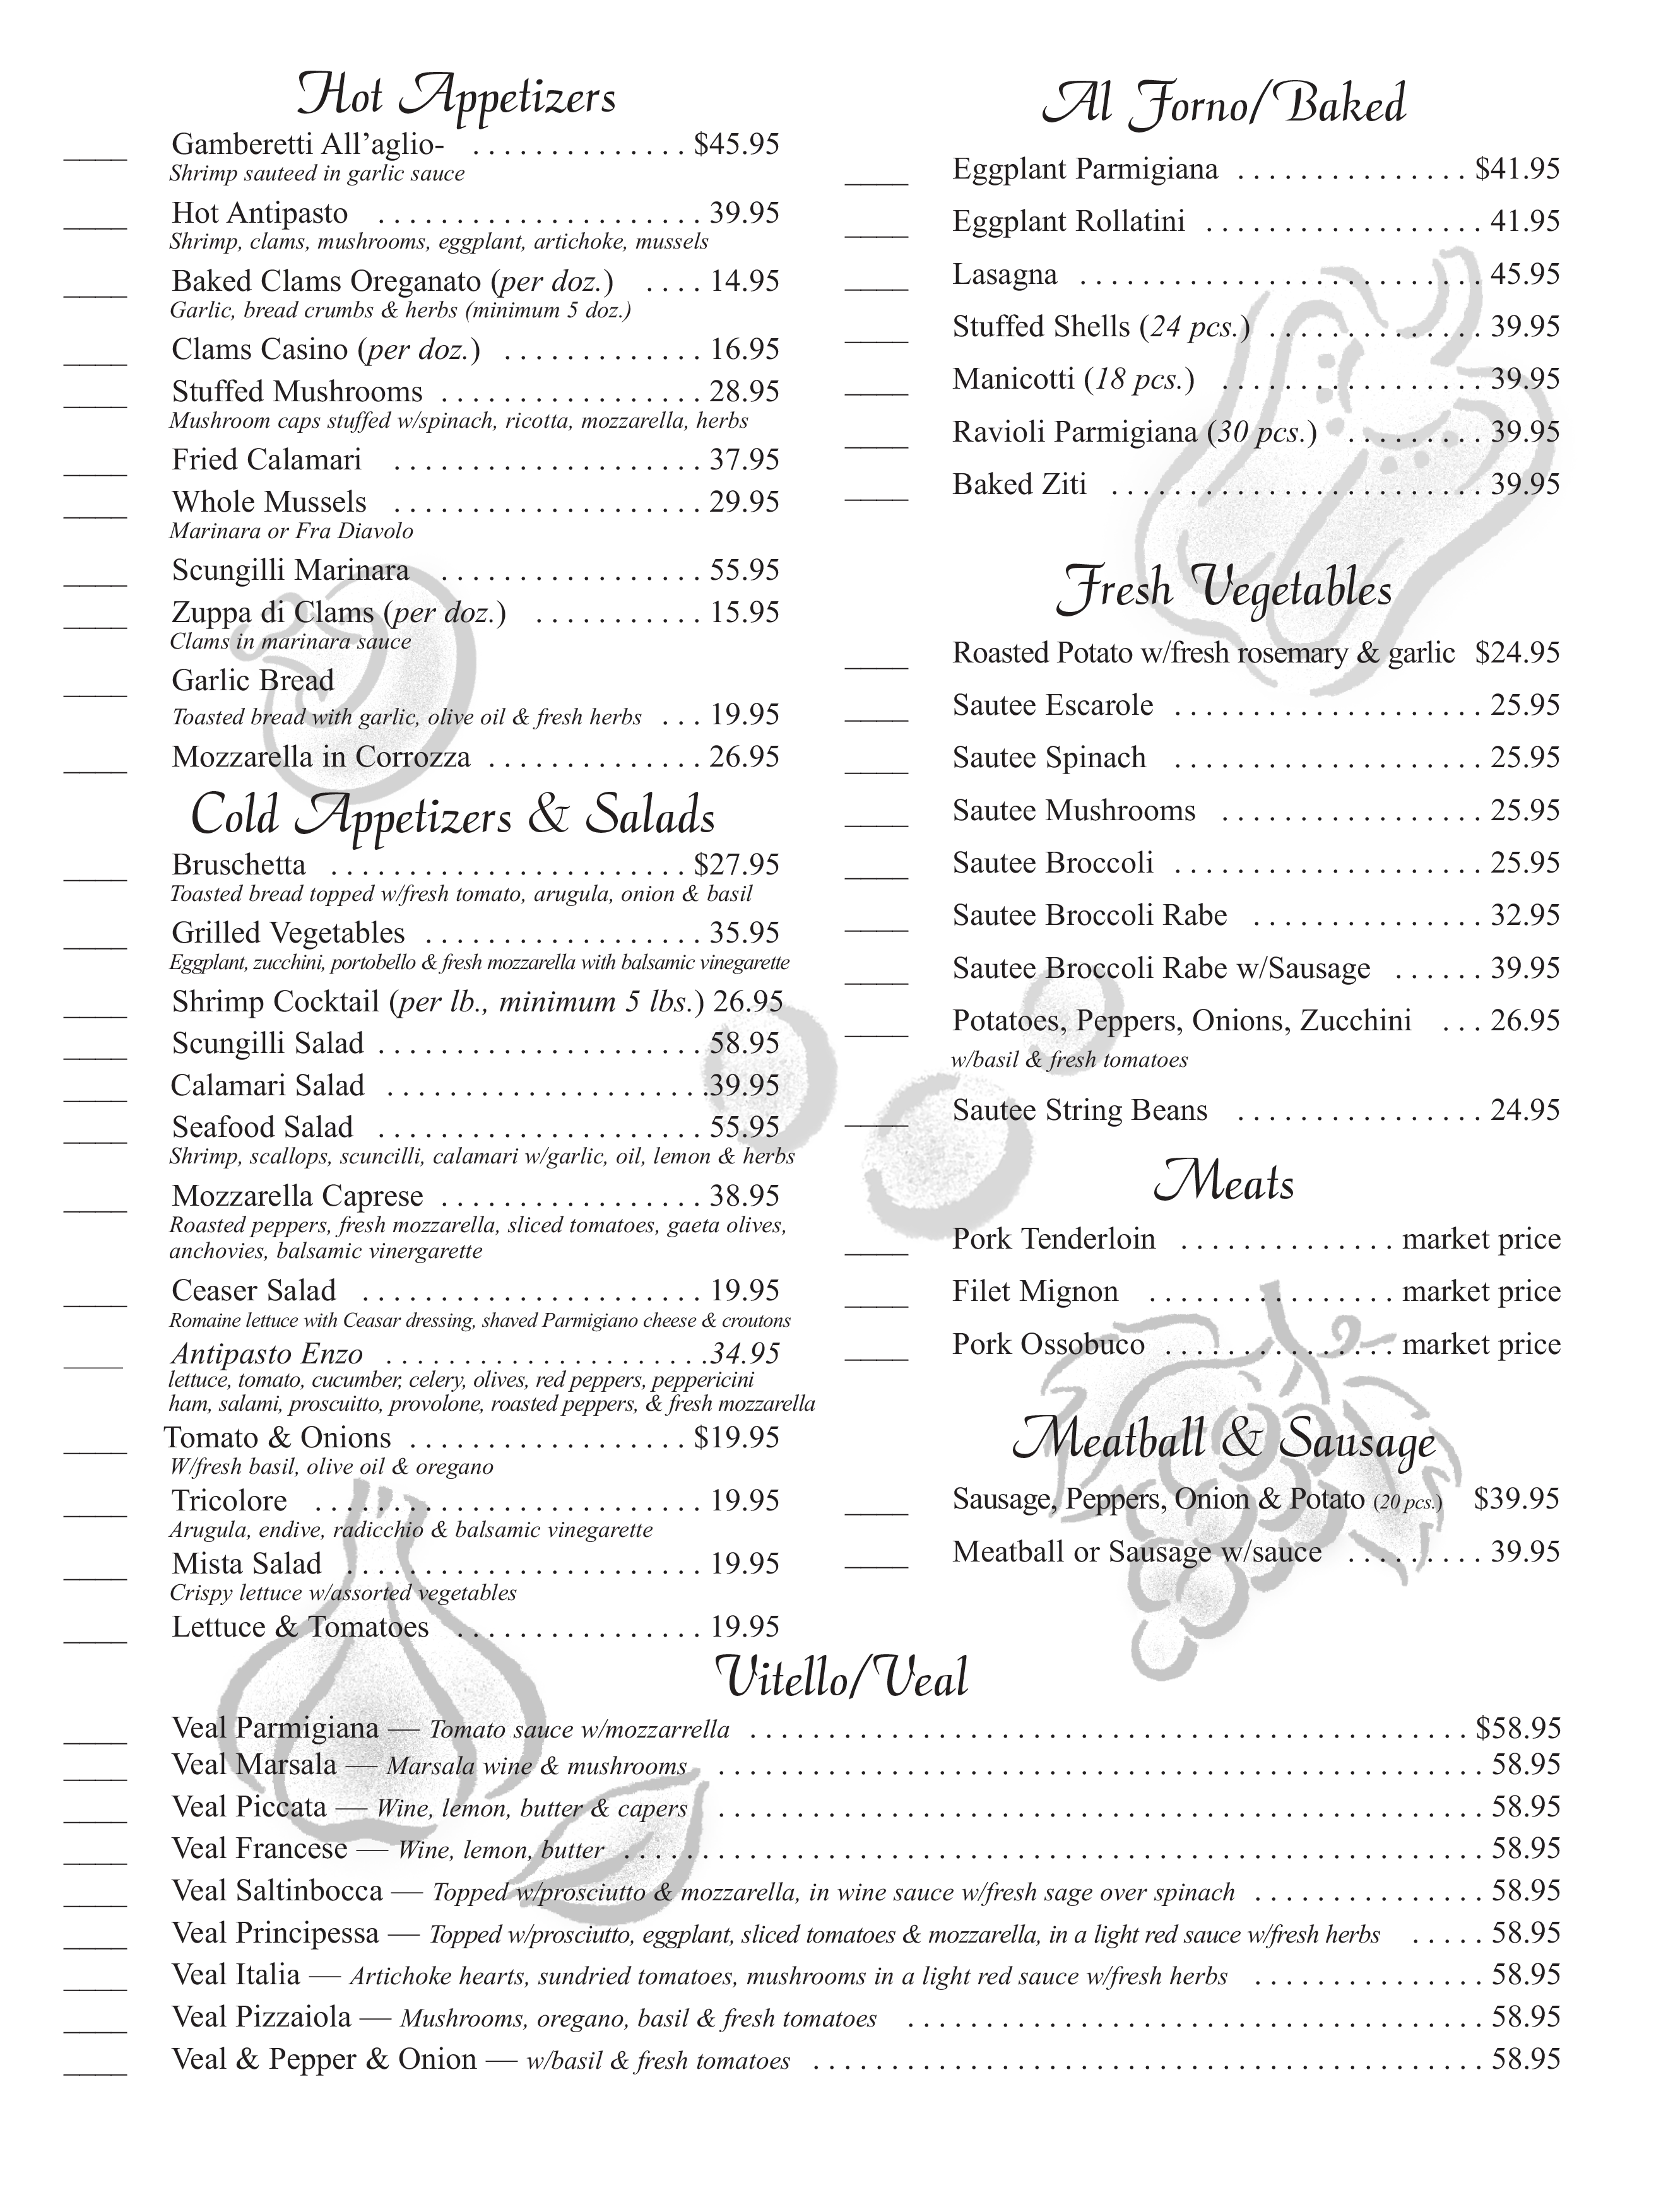 russillo_catering_menu_pg_1-3.29